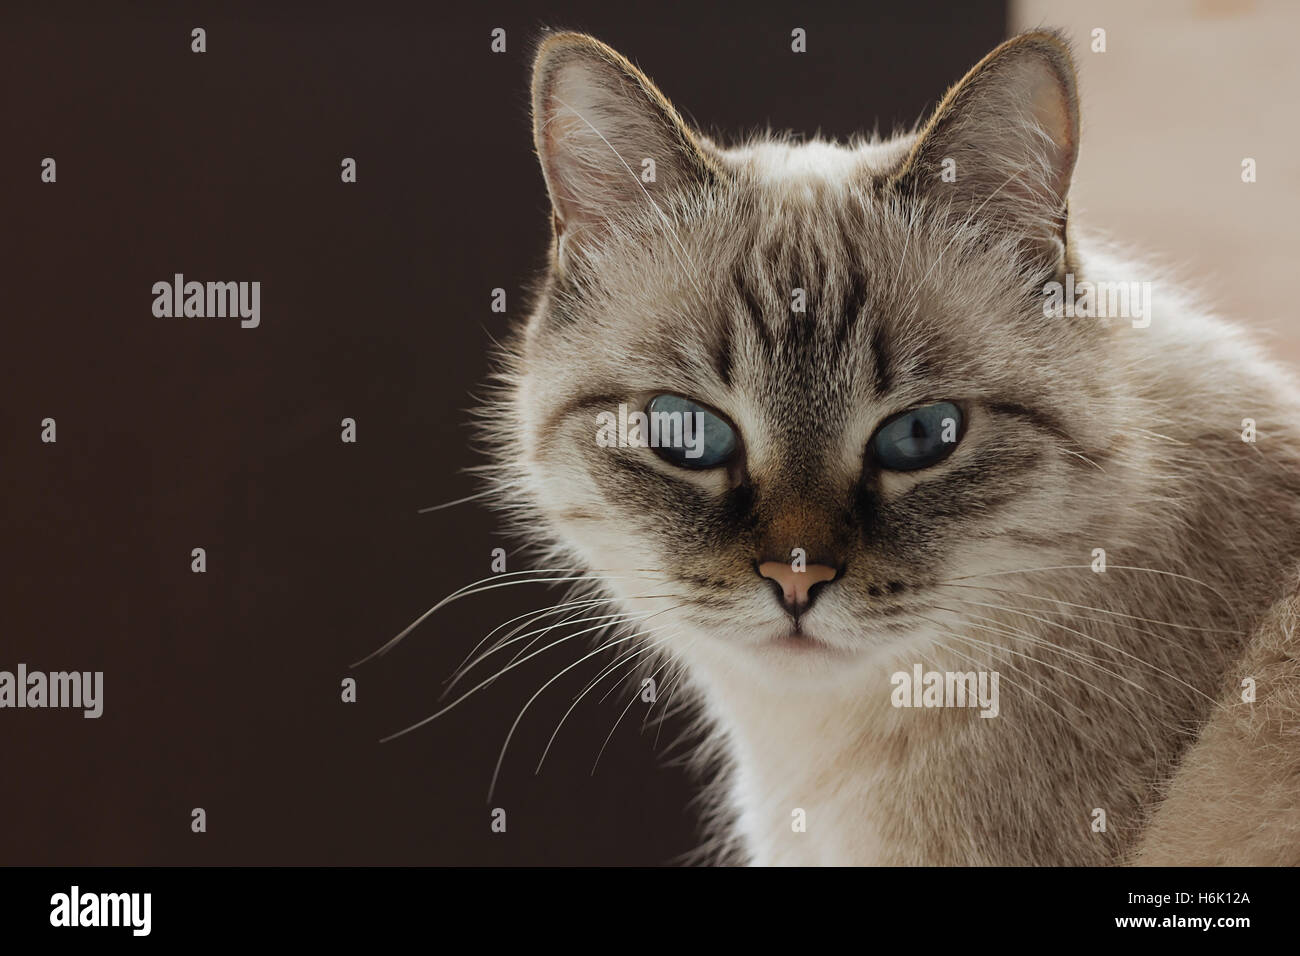 Domestic cat lookinf straight in camera selective focus - Stock Image